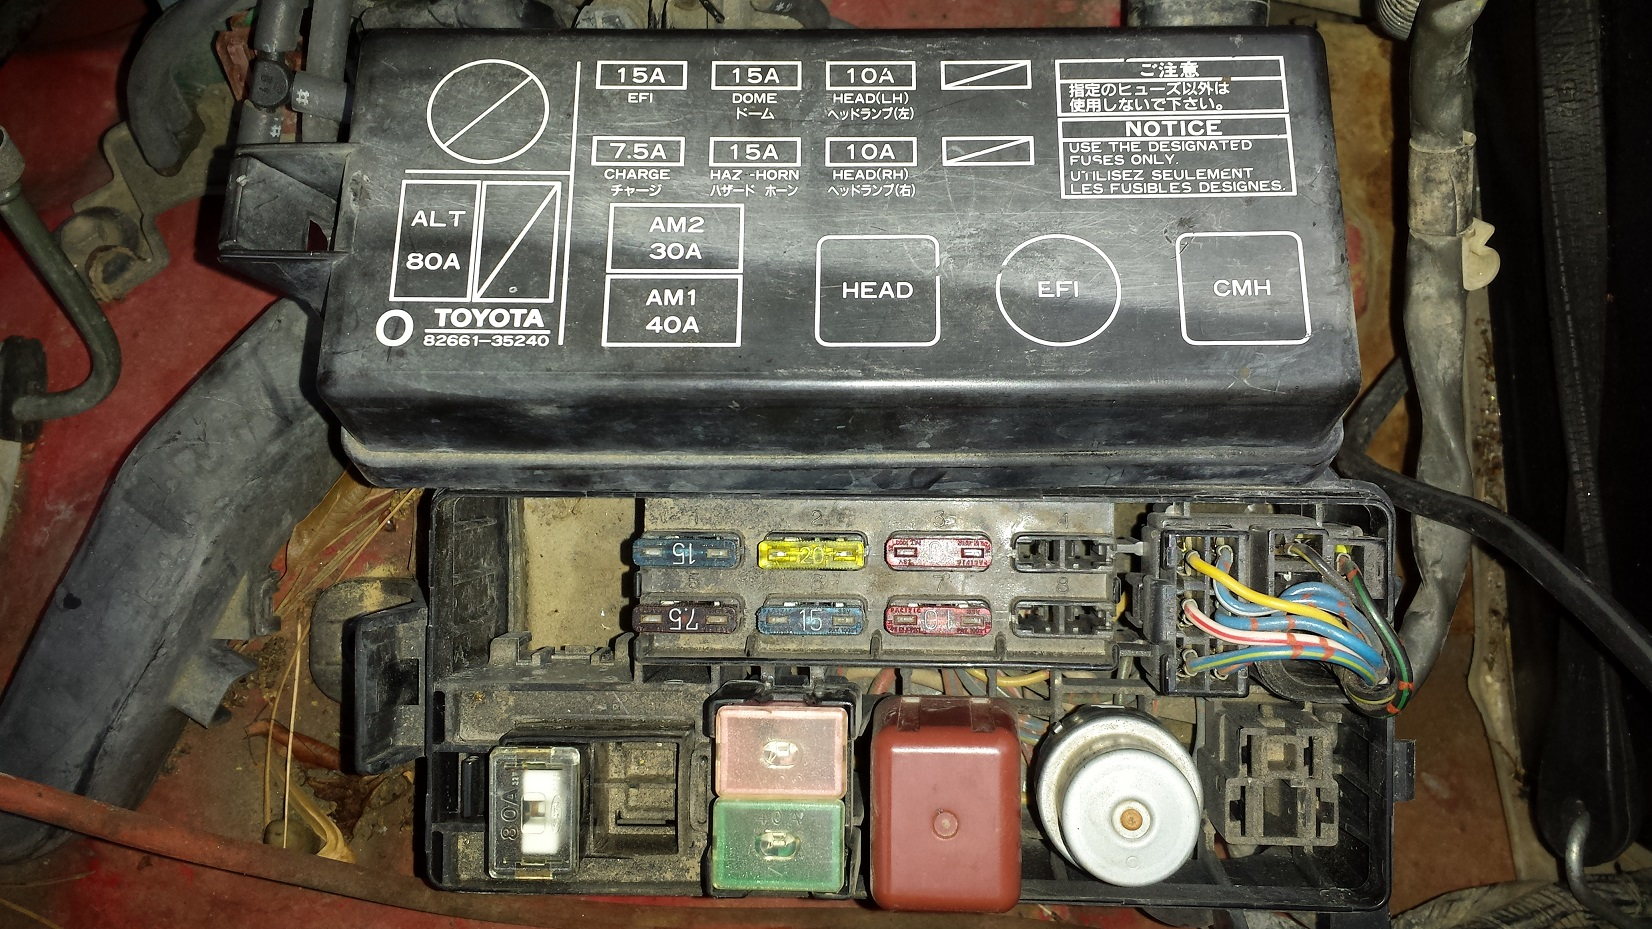 For Of A 2001 Toyota Solara Fuse Box Diagram Does 91 3vze Use A Starter Relay Yotatech Forums